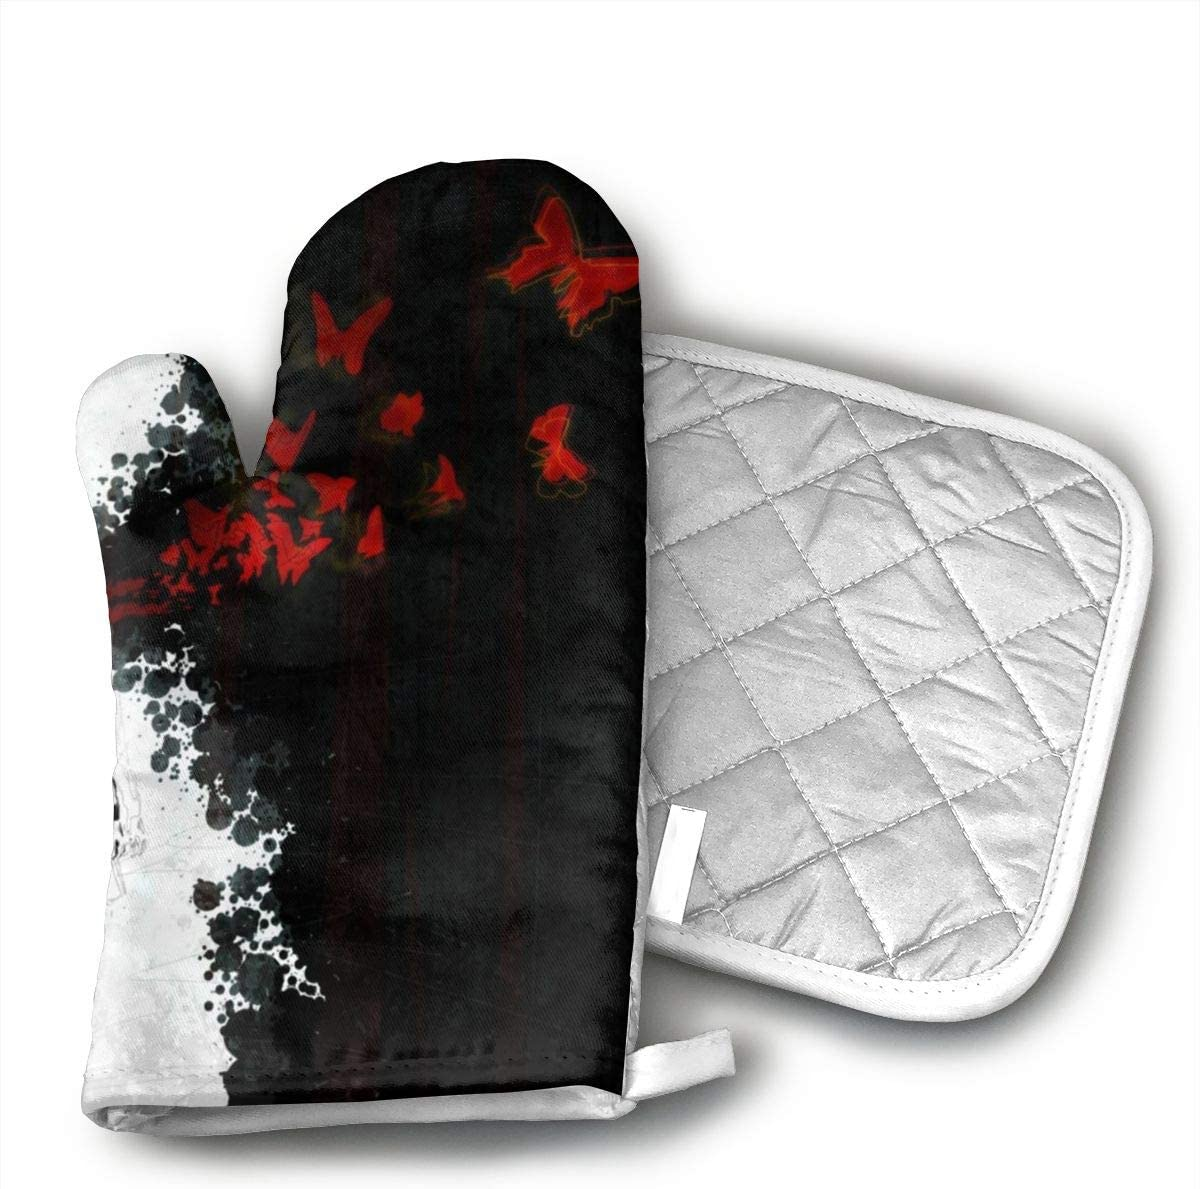 Jiqnajn6 Dark Anime Printed Oven Mitts,Heat Resistant Oven Gloves, Safe Cooking Baking, Grilling, Barbecue, Machine Washable,Pot Holders.